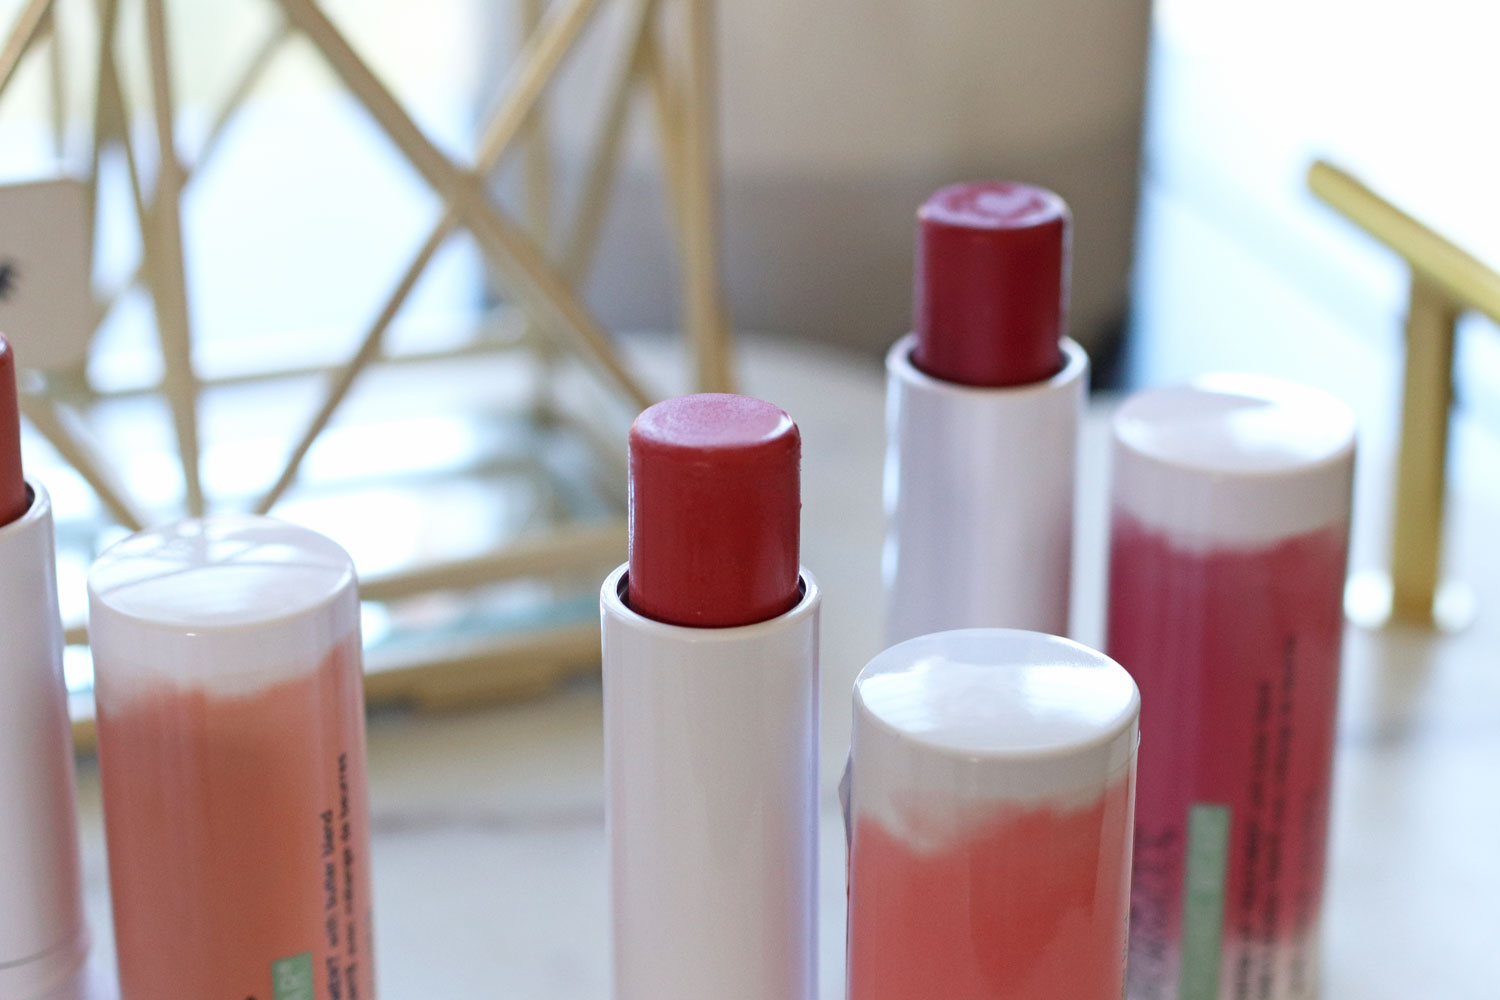 Physicians Formula Organic Wear Tinted Lip Treatment Review and Swatches